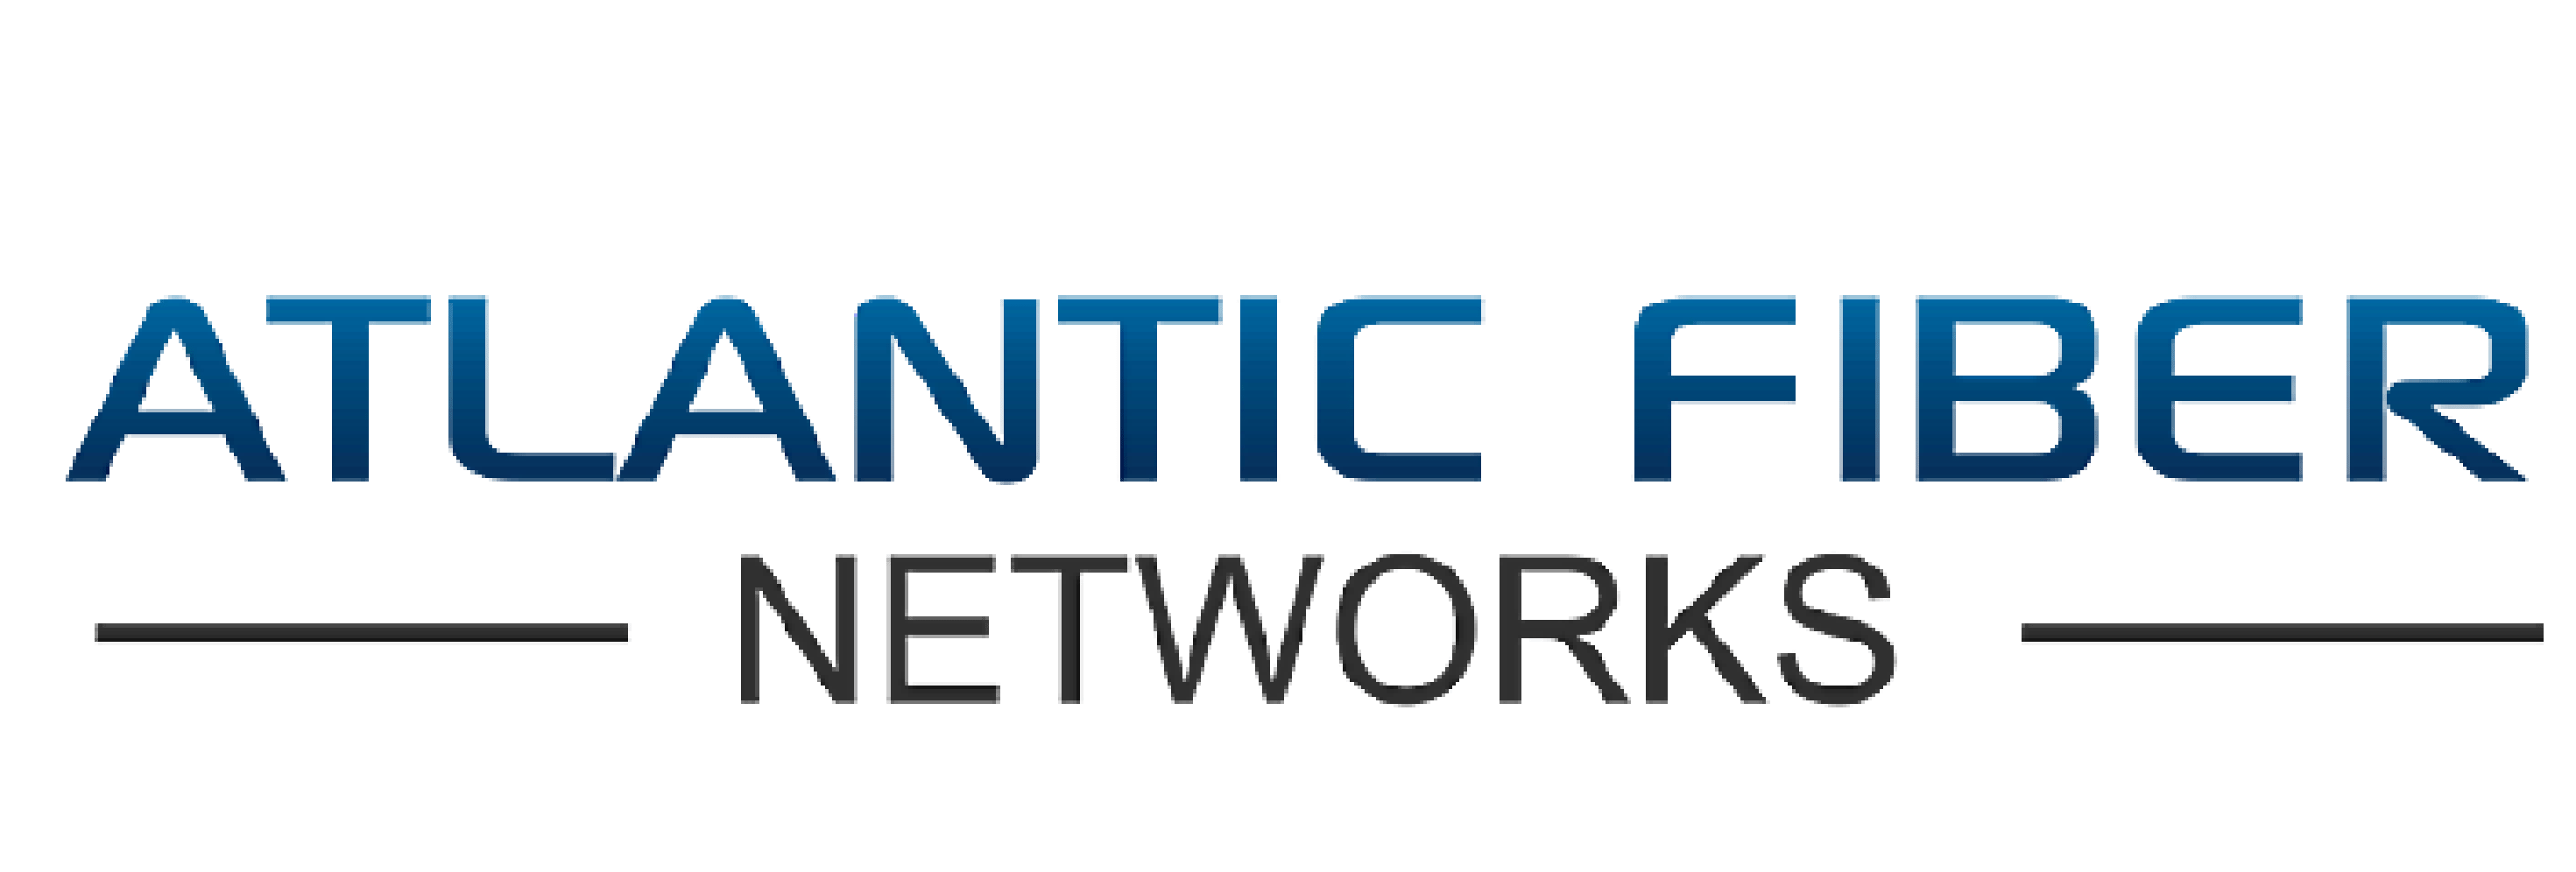 Atlantic Fiber Networks logo